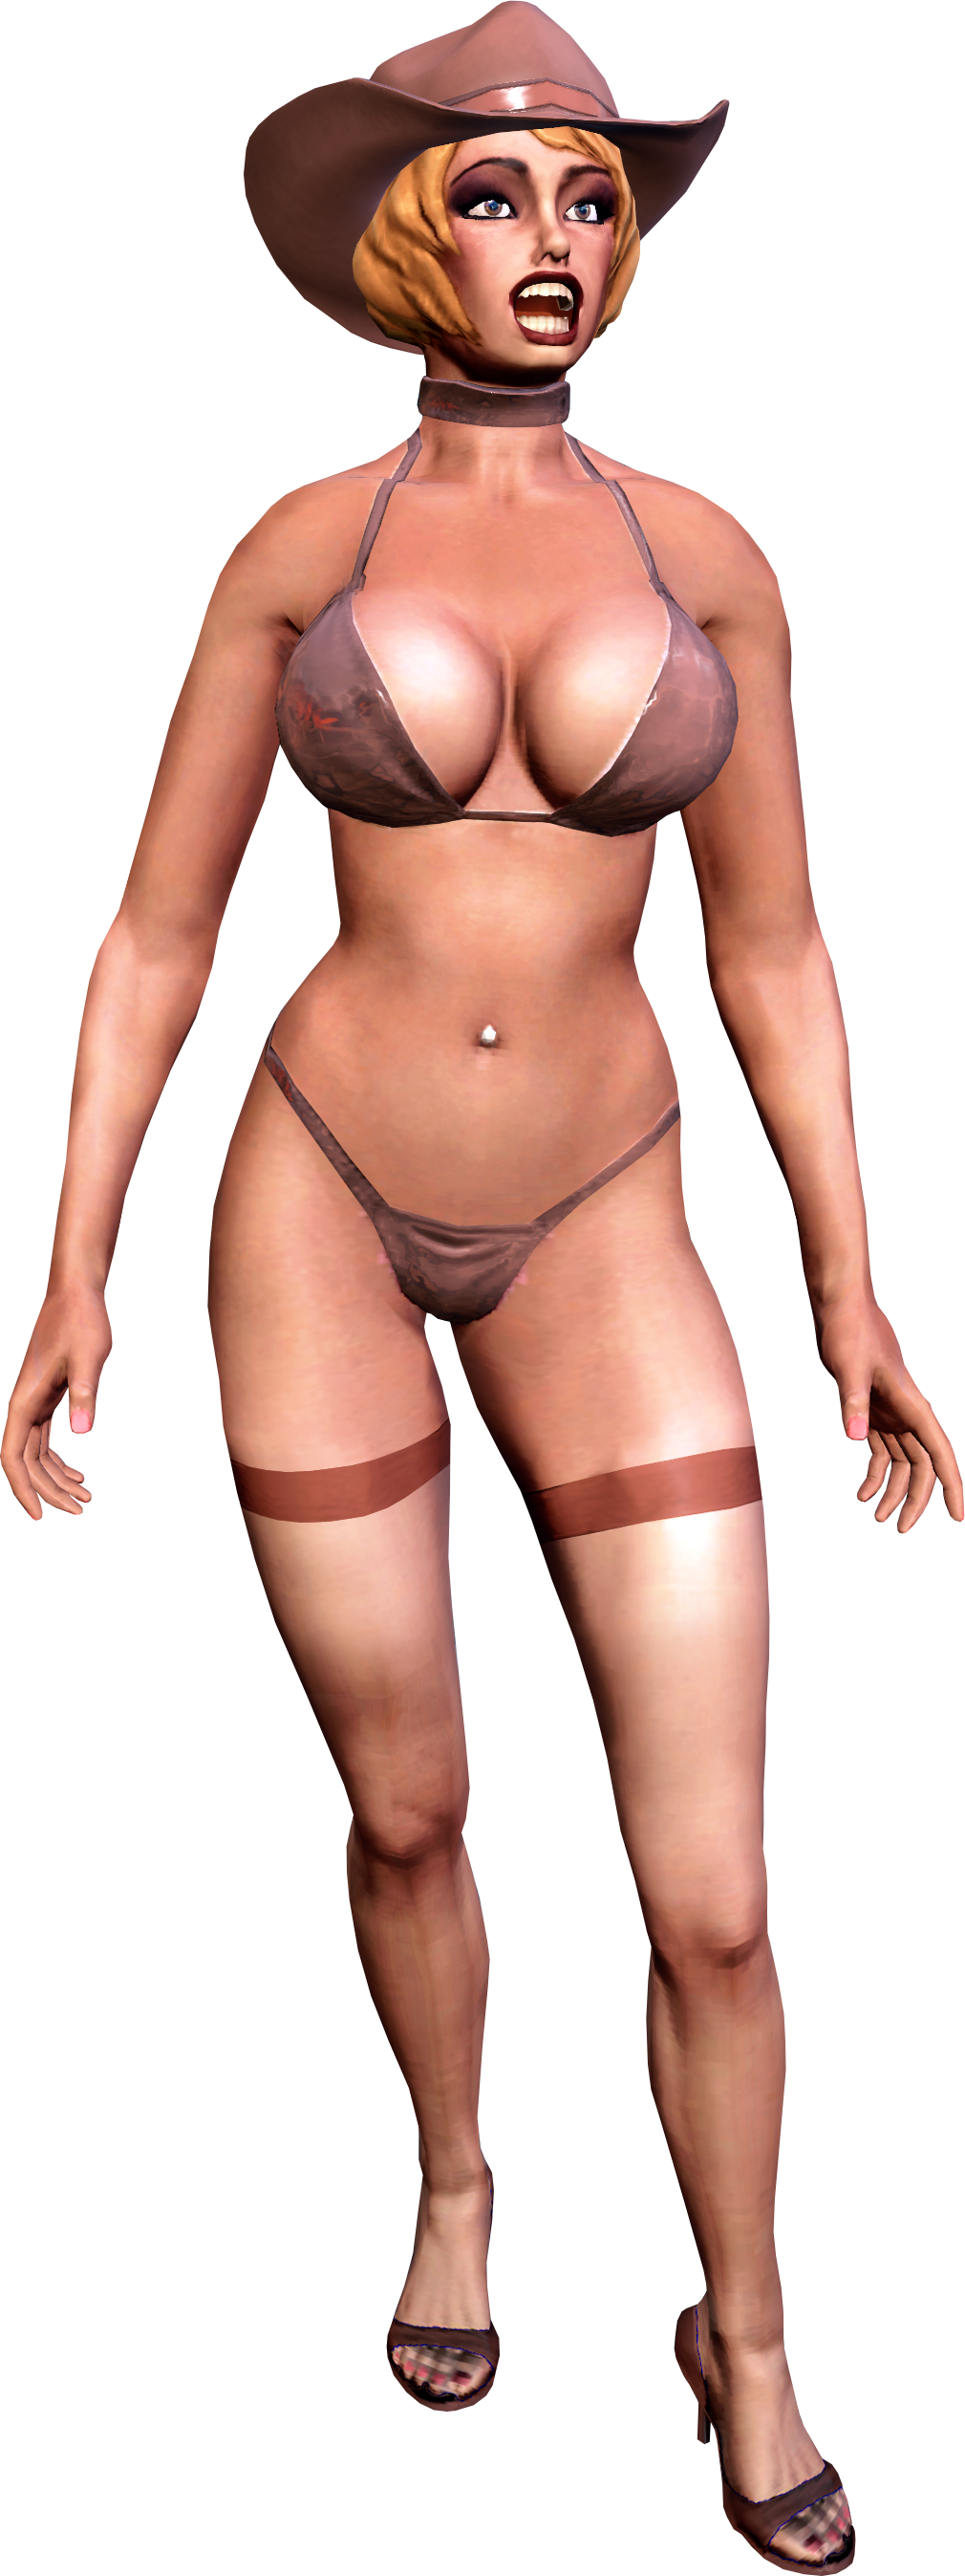 Stripper girl png. Image standing saints row